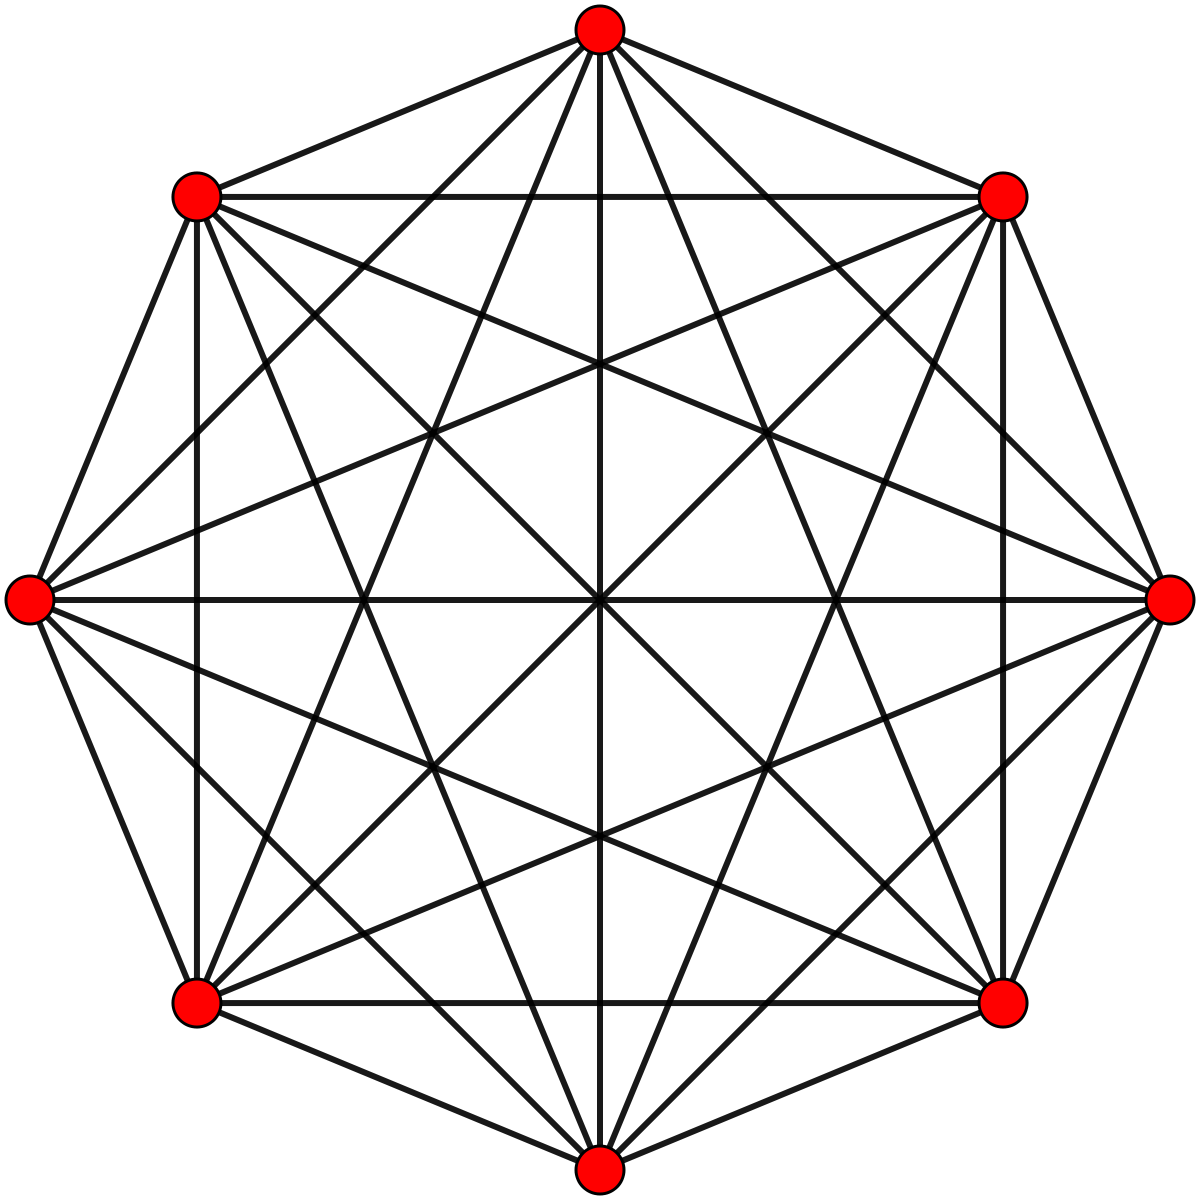 Octagon design png. Rectified simplexes wikipedia